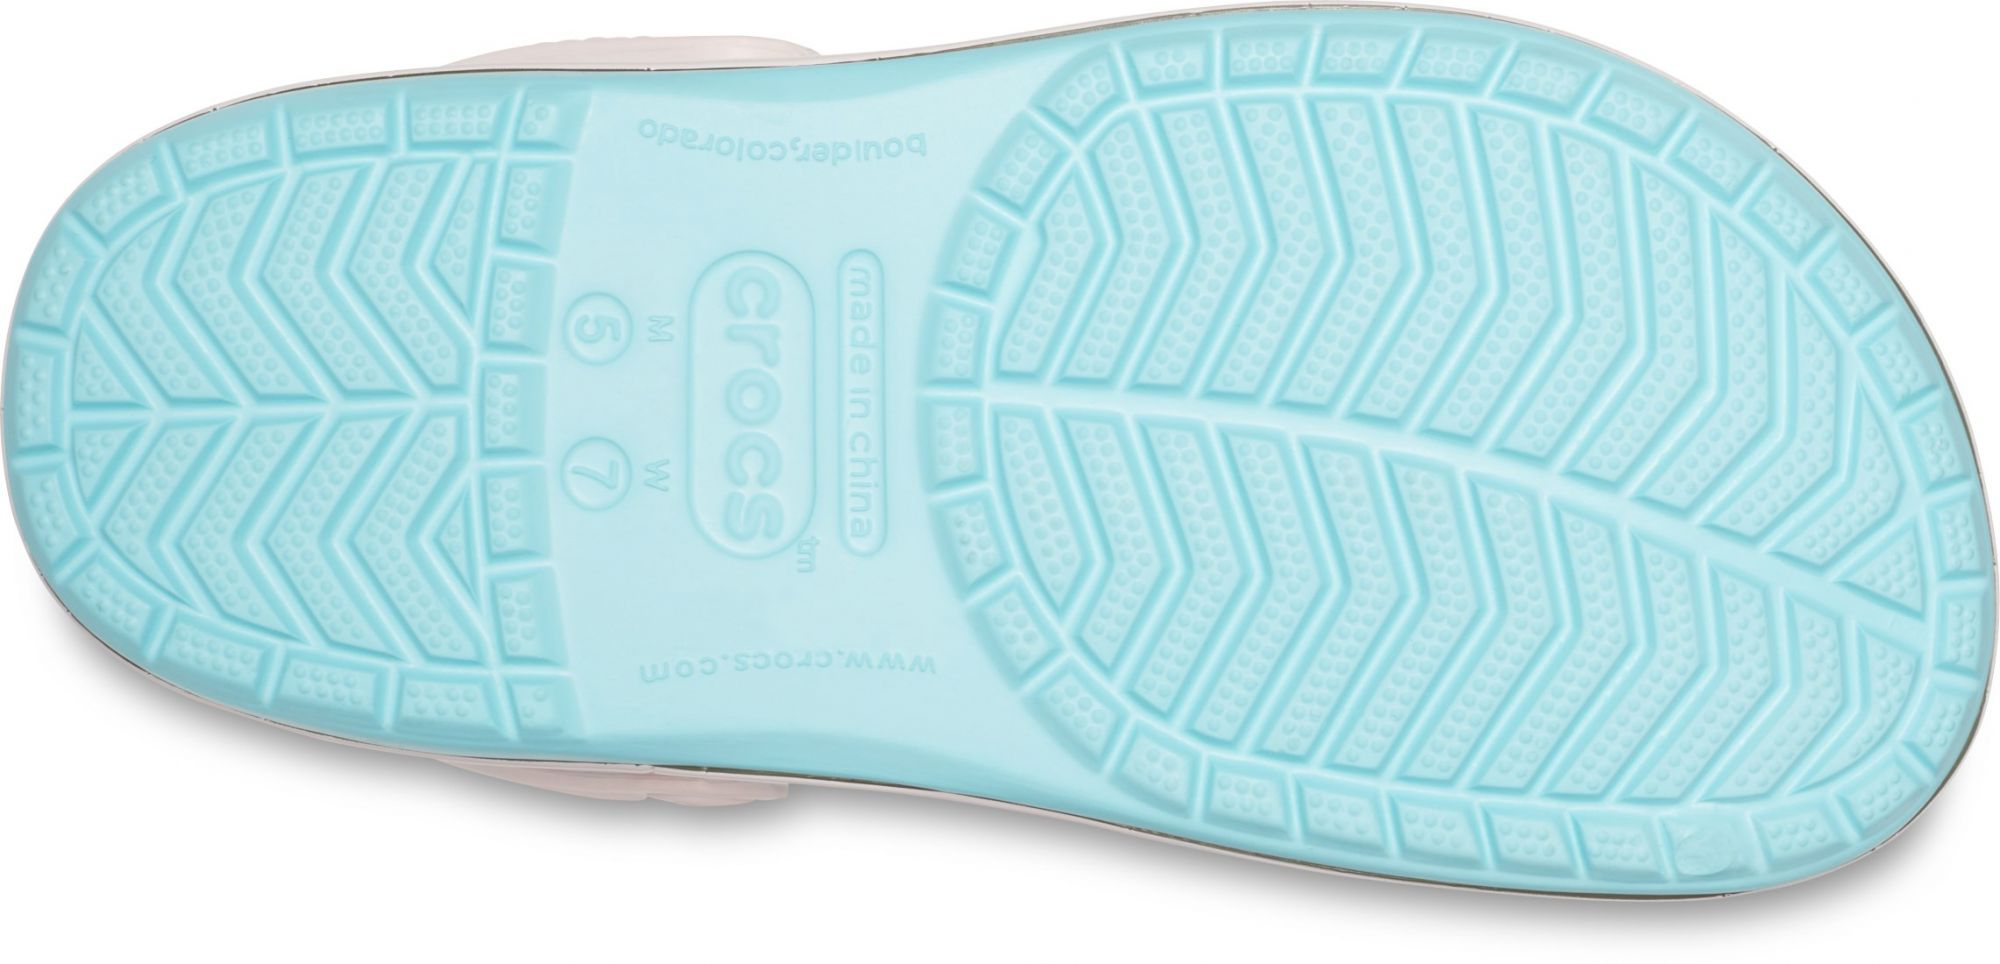 Crocs tyrkysové pantofle s plameňáky Crocband Seasonal Graphic Clog Ice Blue/Pink